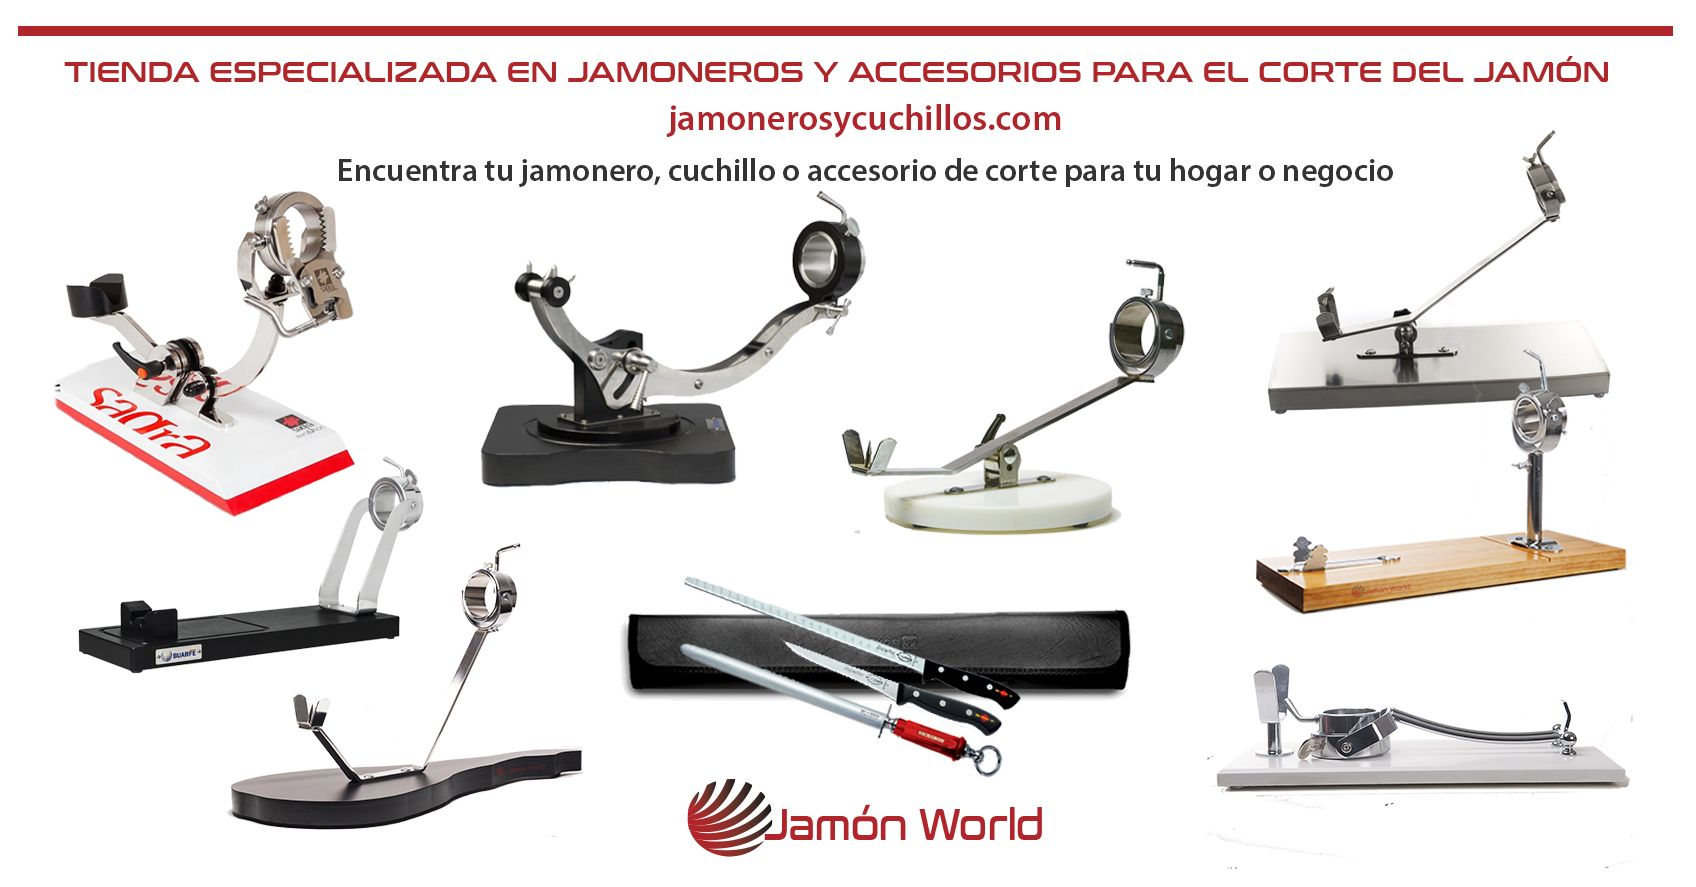 jamoneros tienda especializada jamon world